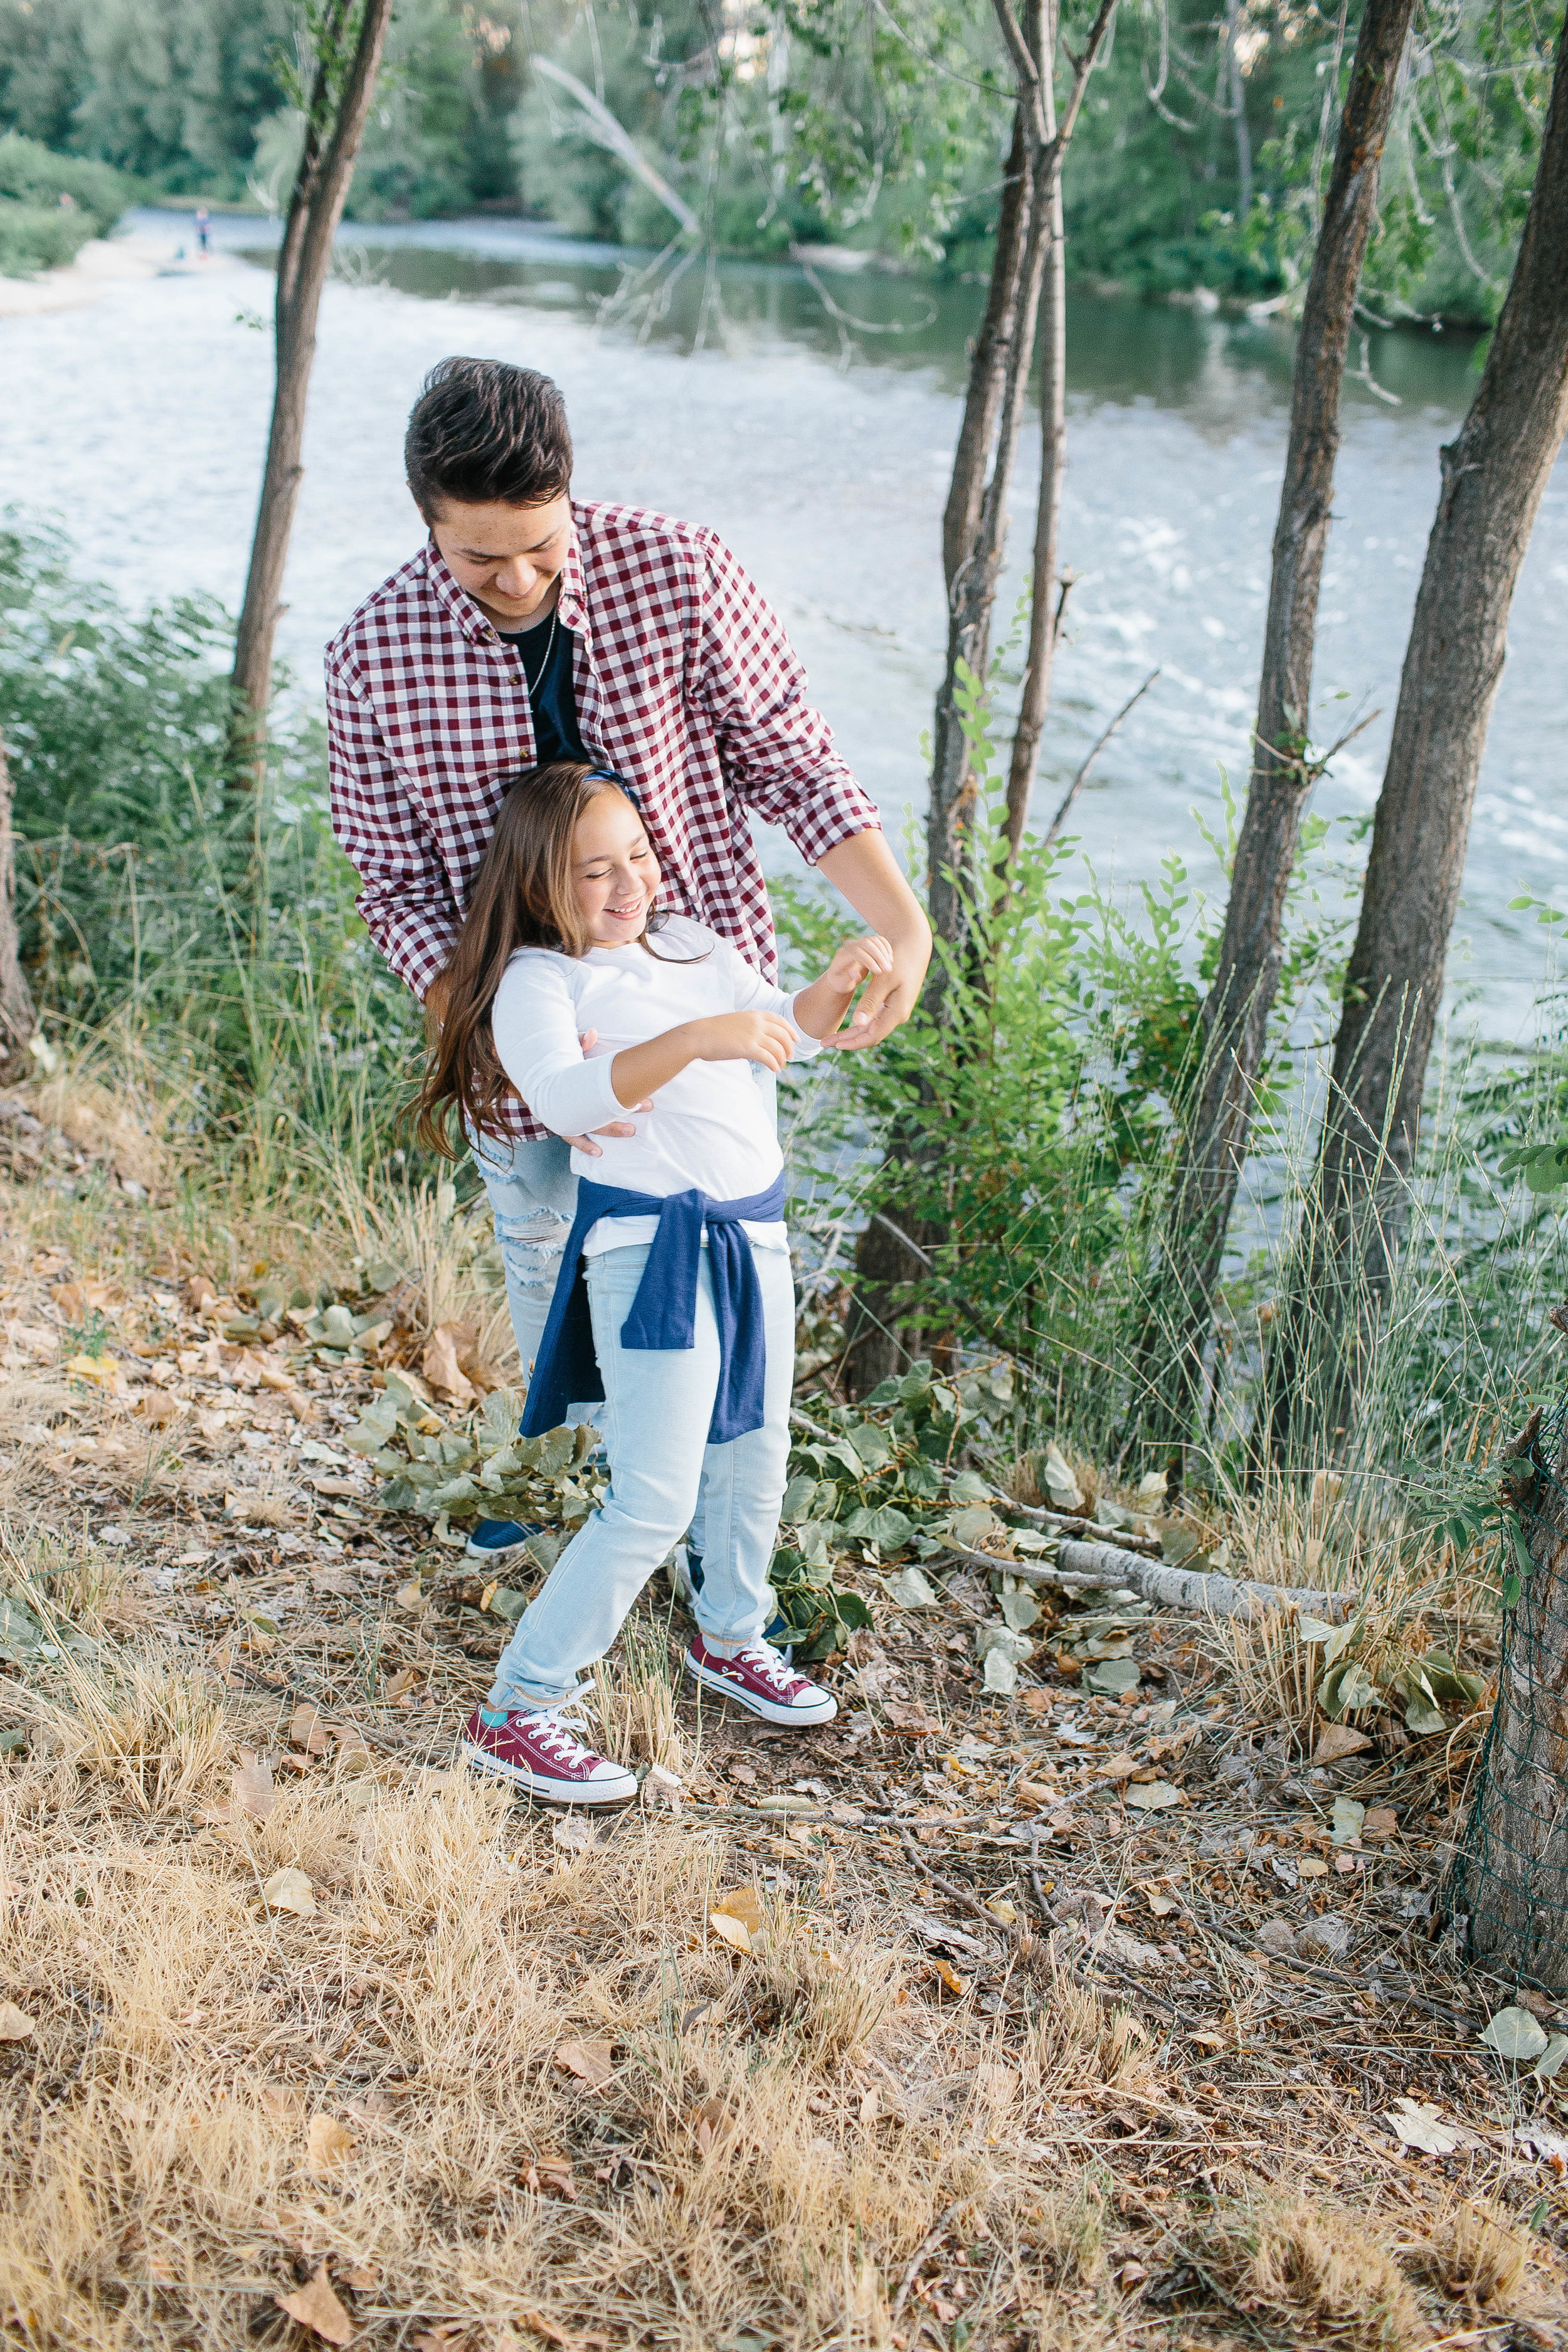 Boise photographer- boise family photographer- family photographer- boise river family session- boise river photography